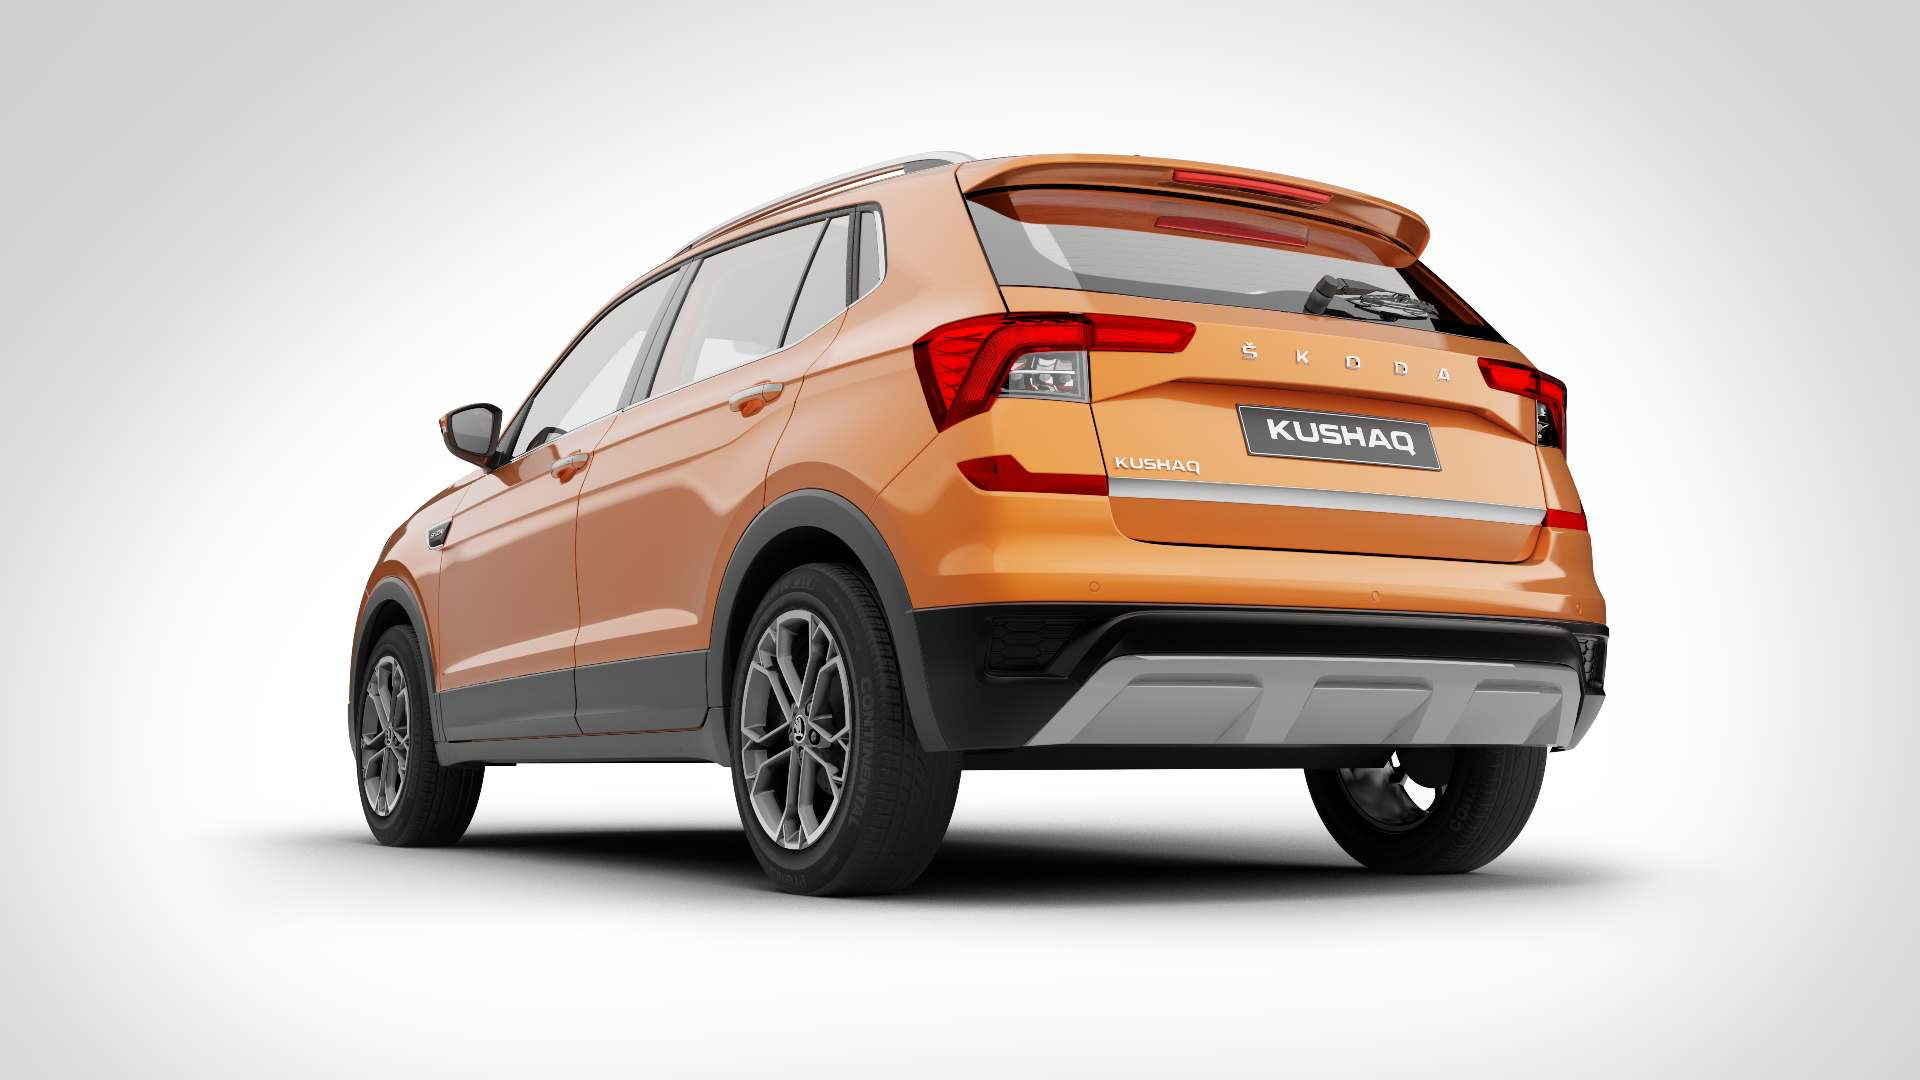 Ground clearance for the Skoda Kushaq is pegged at 188 mm. Image: Skoda